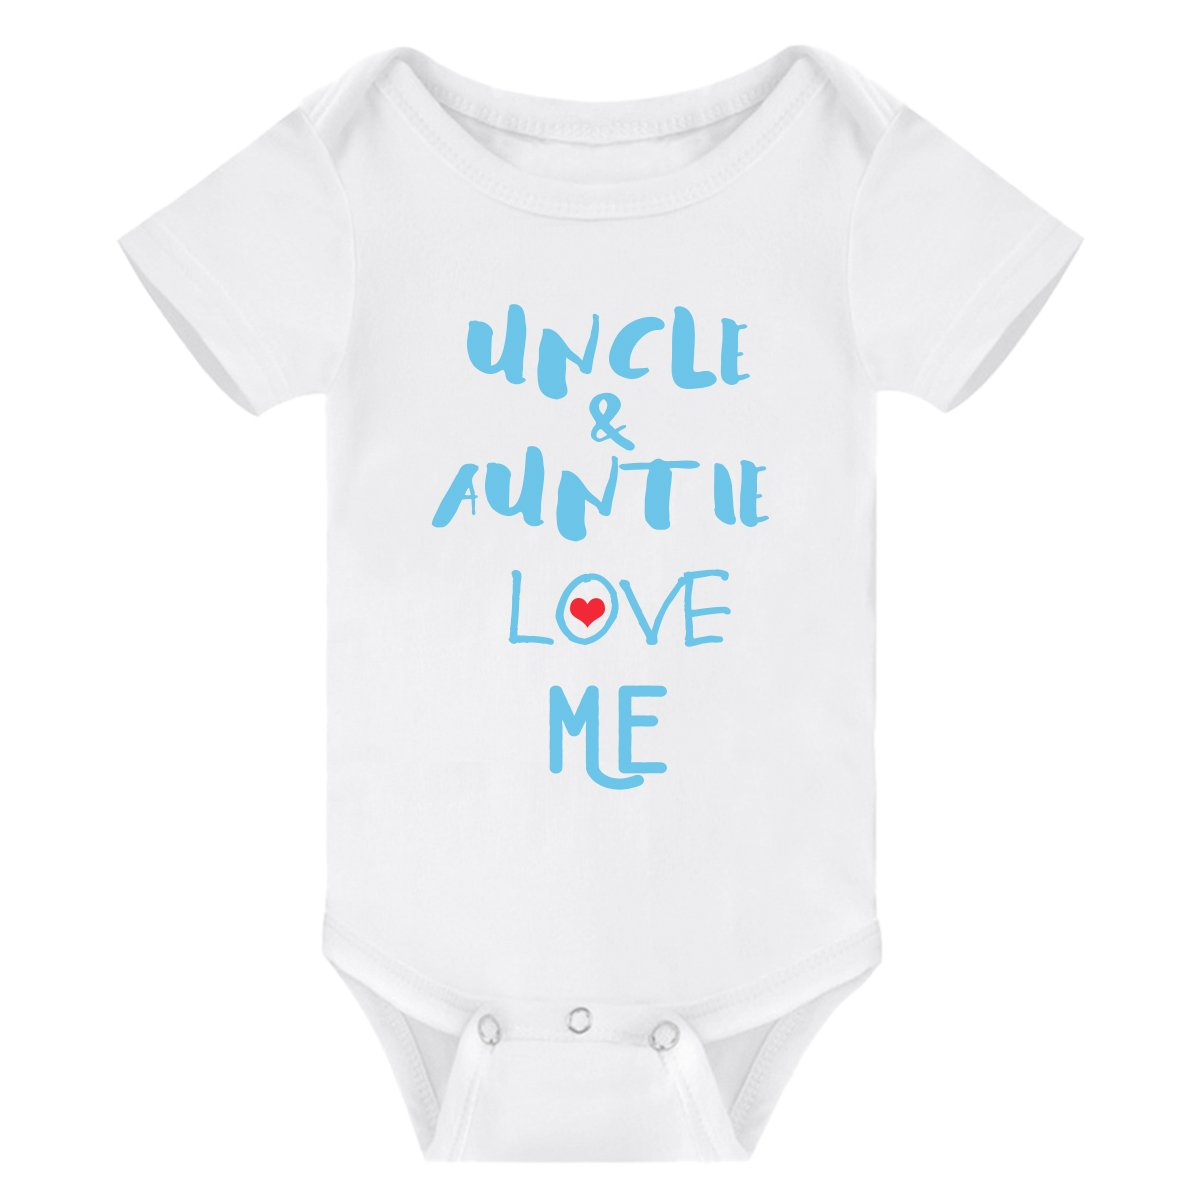 Winzik Newborn Baby Boys Girls Outfits Uncle Auntie Love Me Letters Print Baby Onesie Romper Jumpsuit T-Shirt (0-3 Months, White Blue) by Winzik (Image #1)